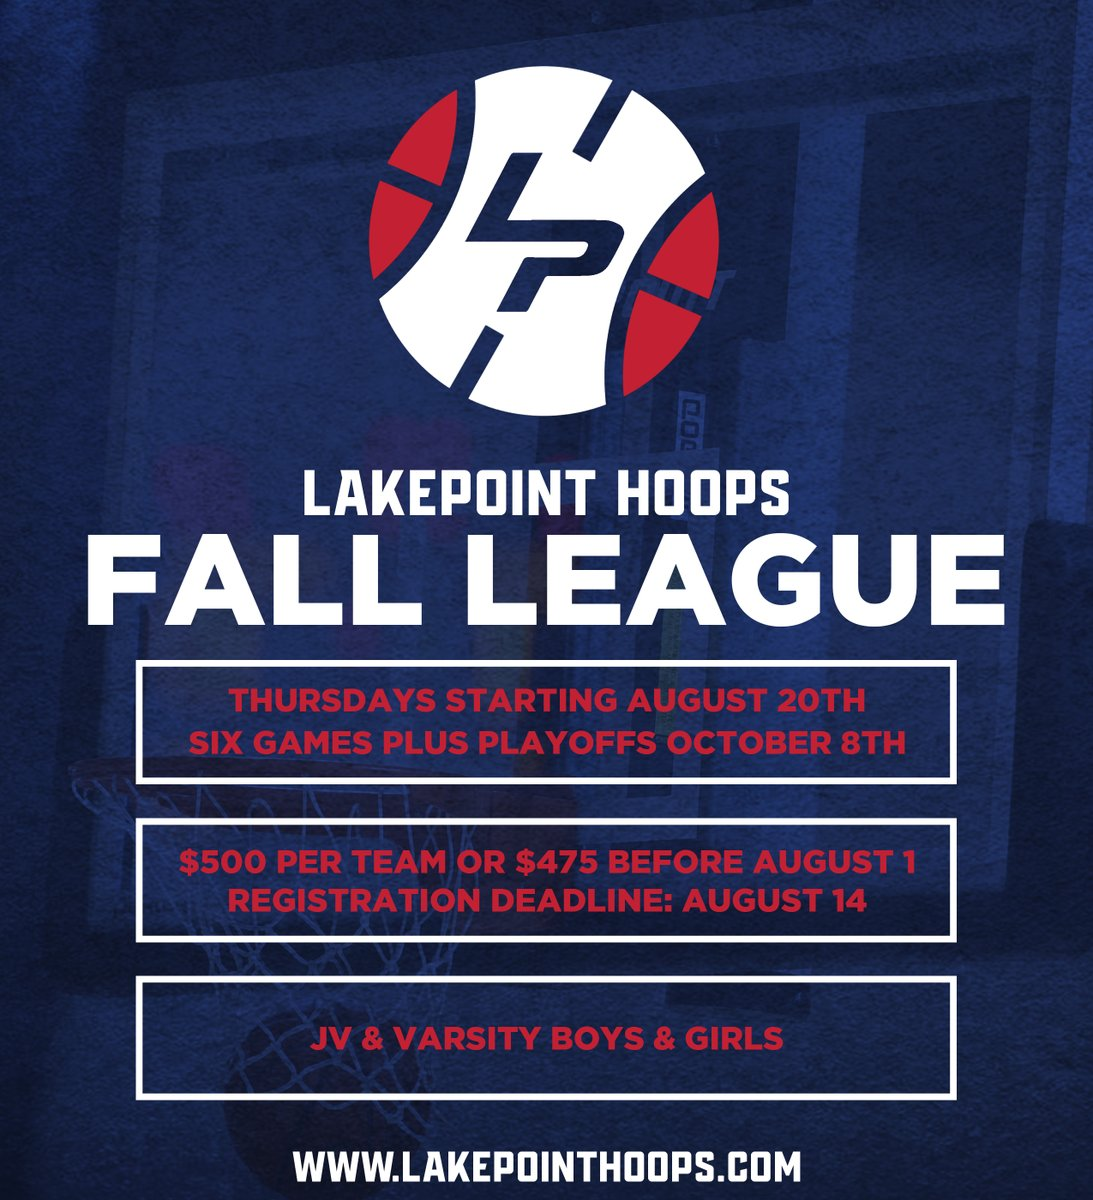 SPOTS ARE LIMITED for our #LakePointHoops Fall League!  If your team(s) want in, lock in your spot today as we've had a surge in registration this week.  https://t.co/x2uZX0WNlb https://t.co/viYdXj8Vzf